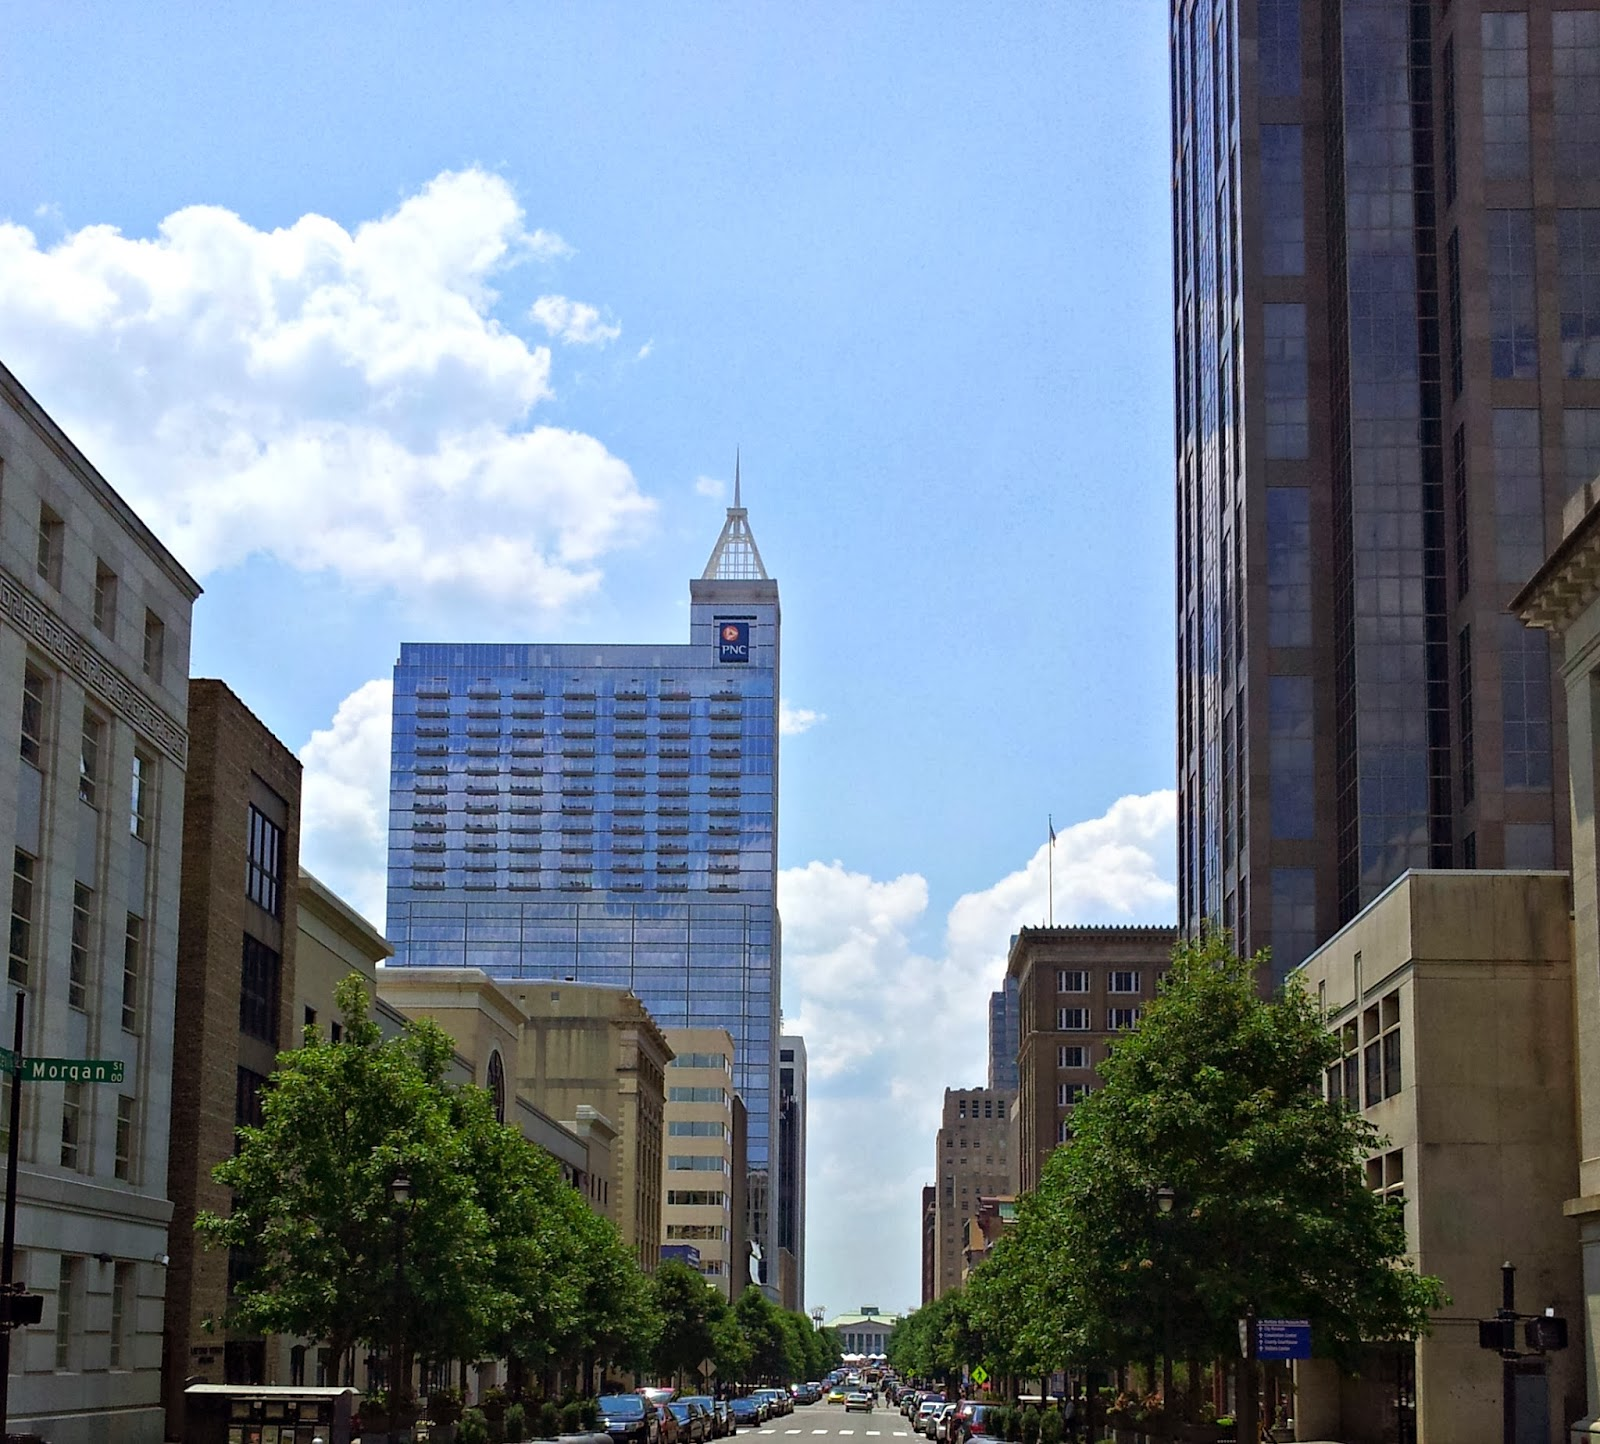 Downtown Raleigh, N.C.